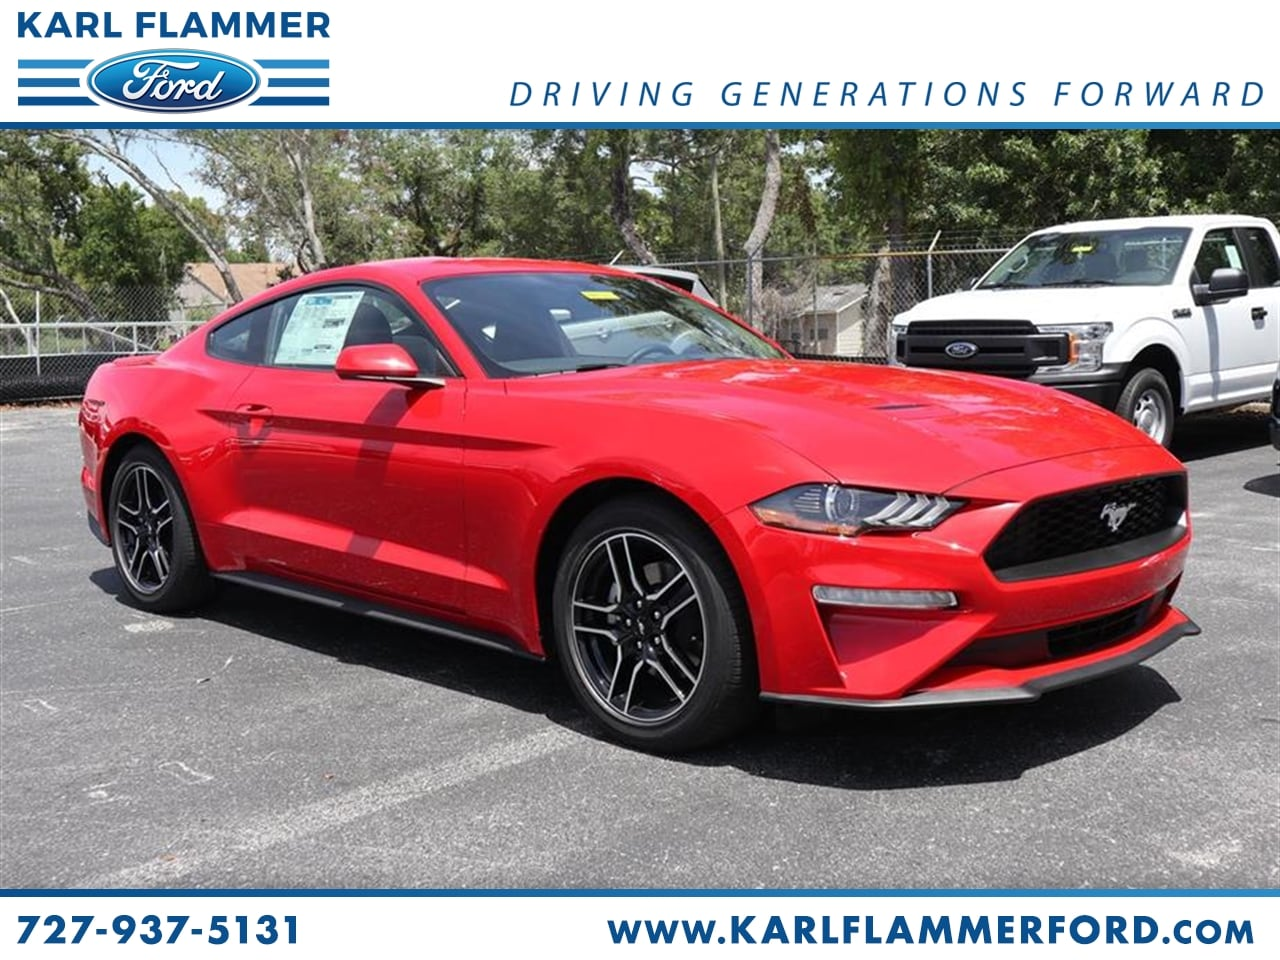 Ford Mustang Lease >> New 2019 Ford Mustang For Sale Lease Tarpon Springs Fl Stock 9p8t7210